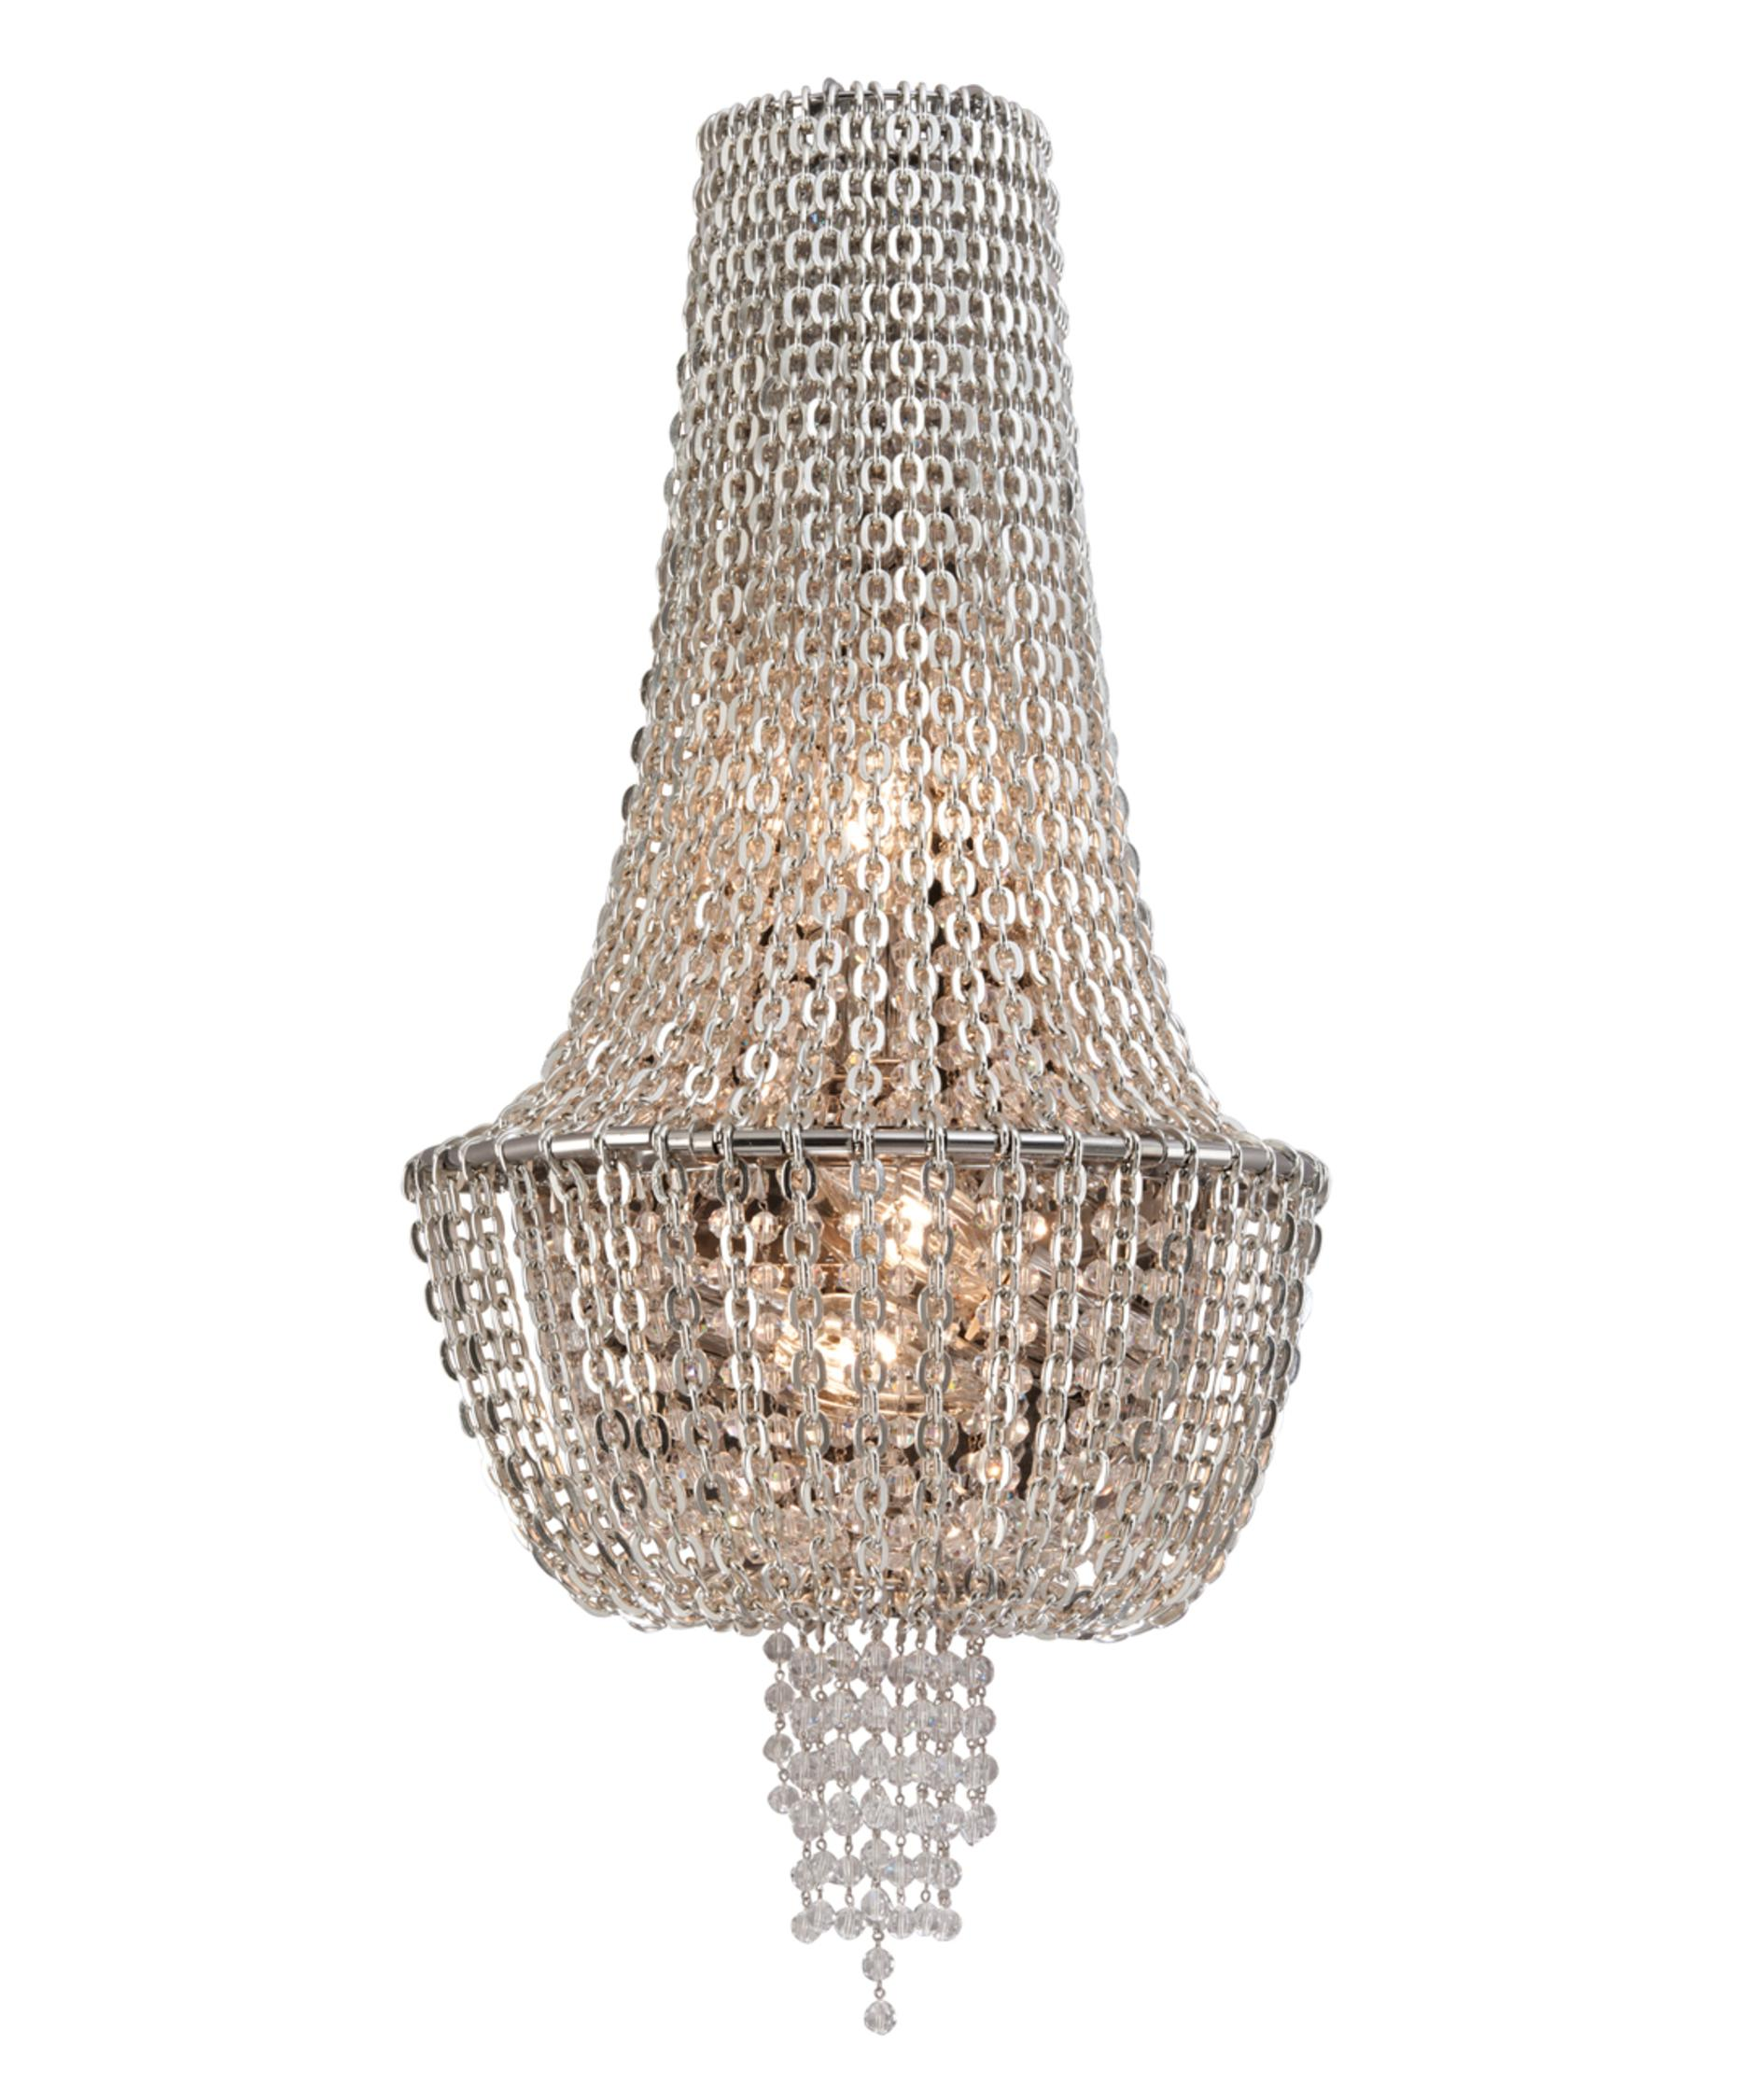 corbett lighting  vixen  inch wide wall sconce  capitol  - shown in polished nickel jewelry chain finish and crystal beads crystal